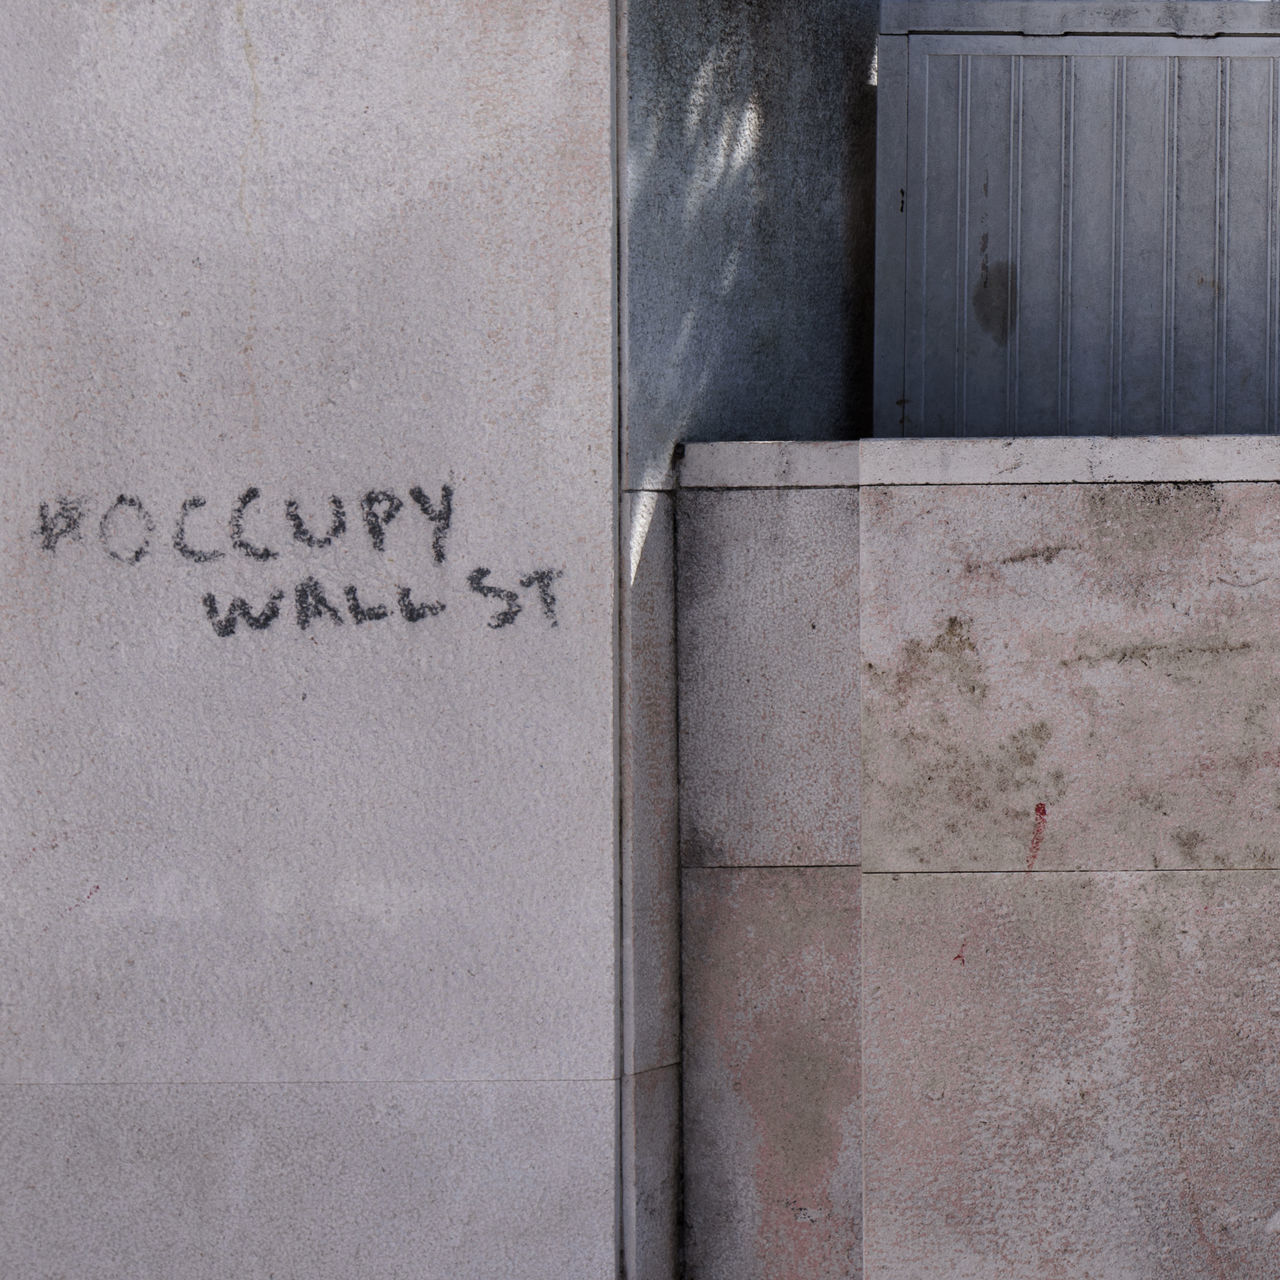 Architecture Close-up Communication Day Graffiti No People Occupy Wall Street Outdoors Protest Tagging Text